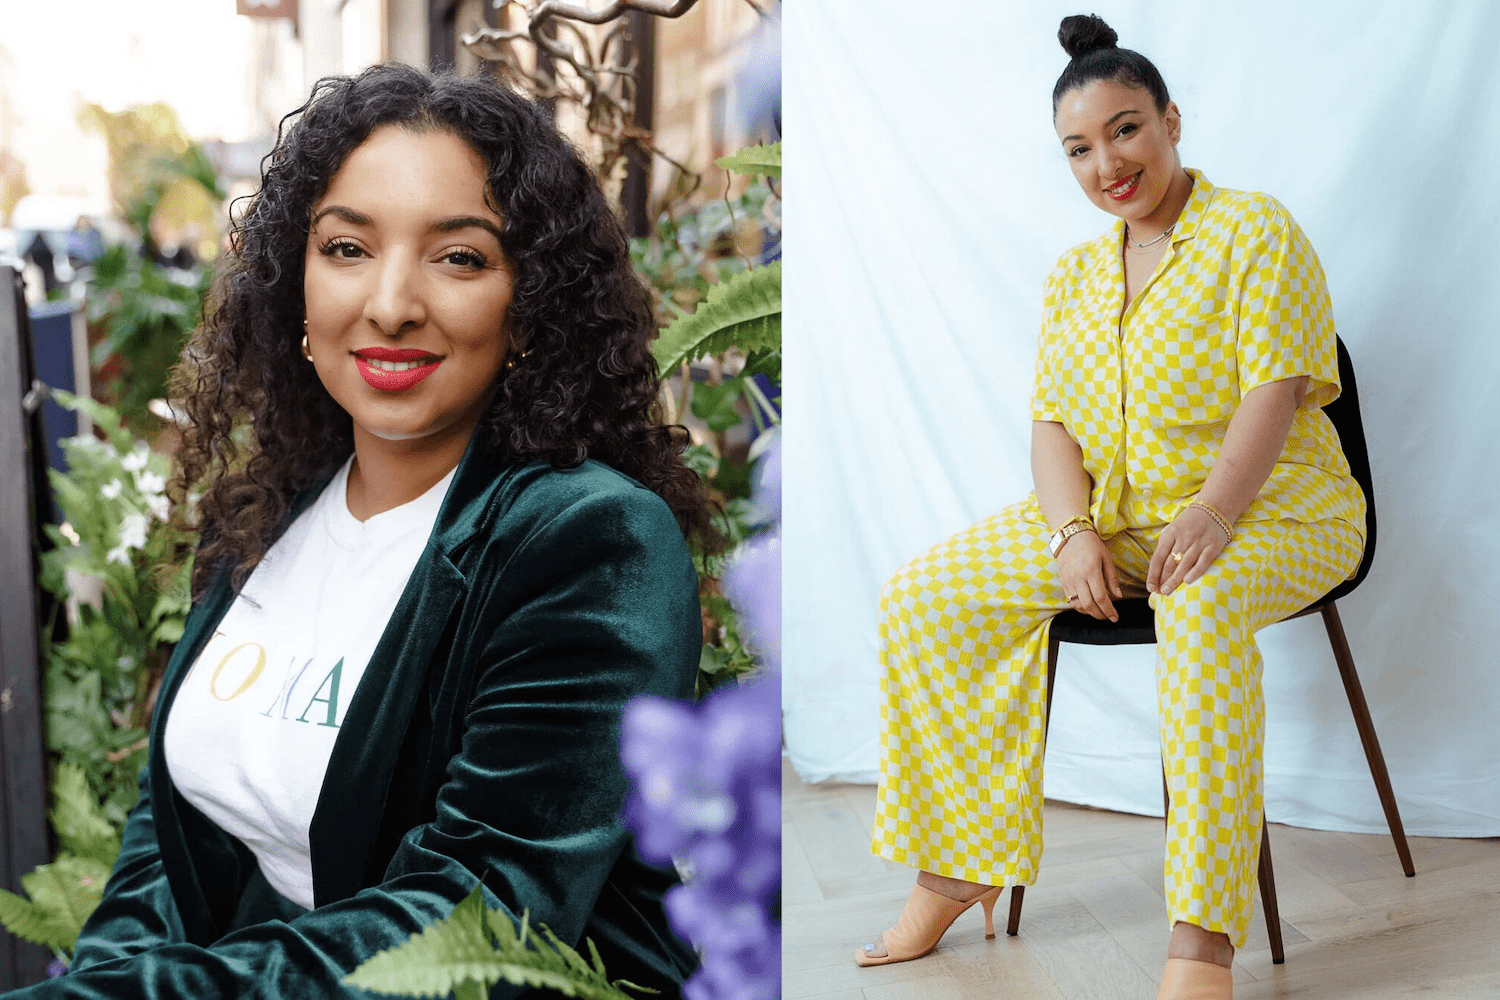 My thoughts on sustainable fashion and renting: as a sustainability & style content creator